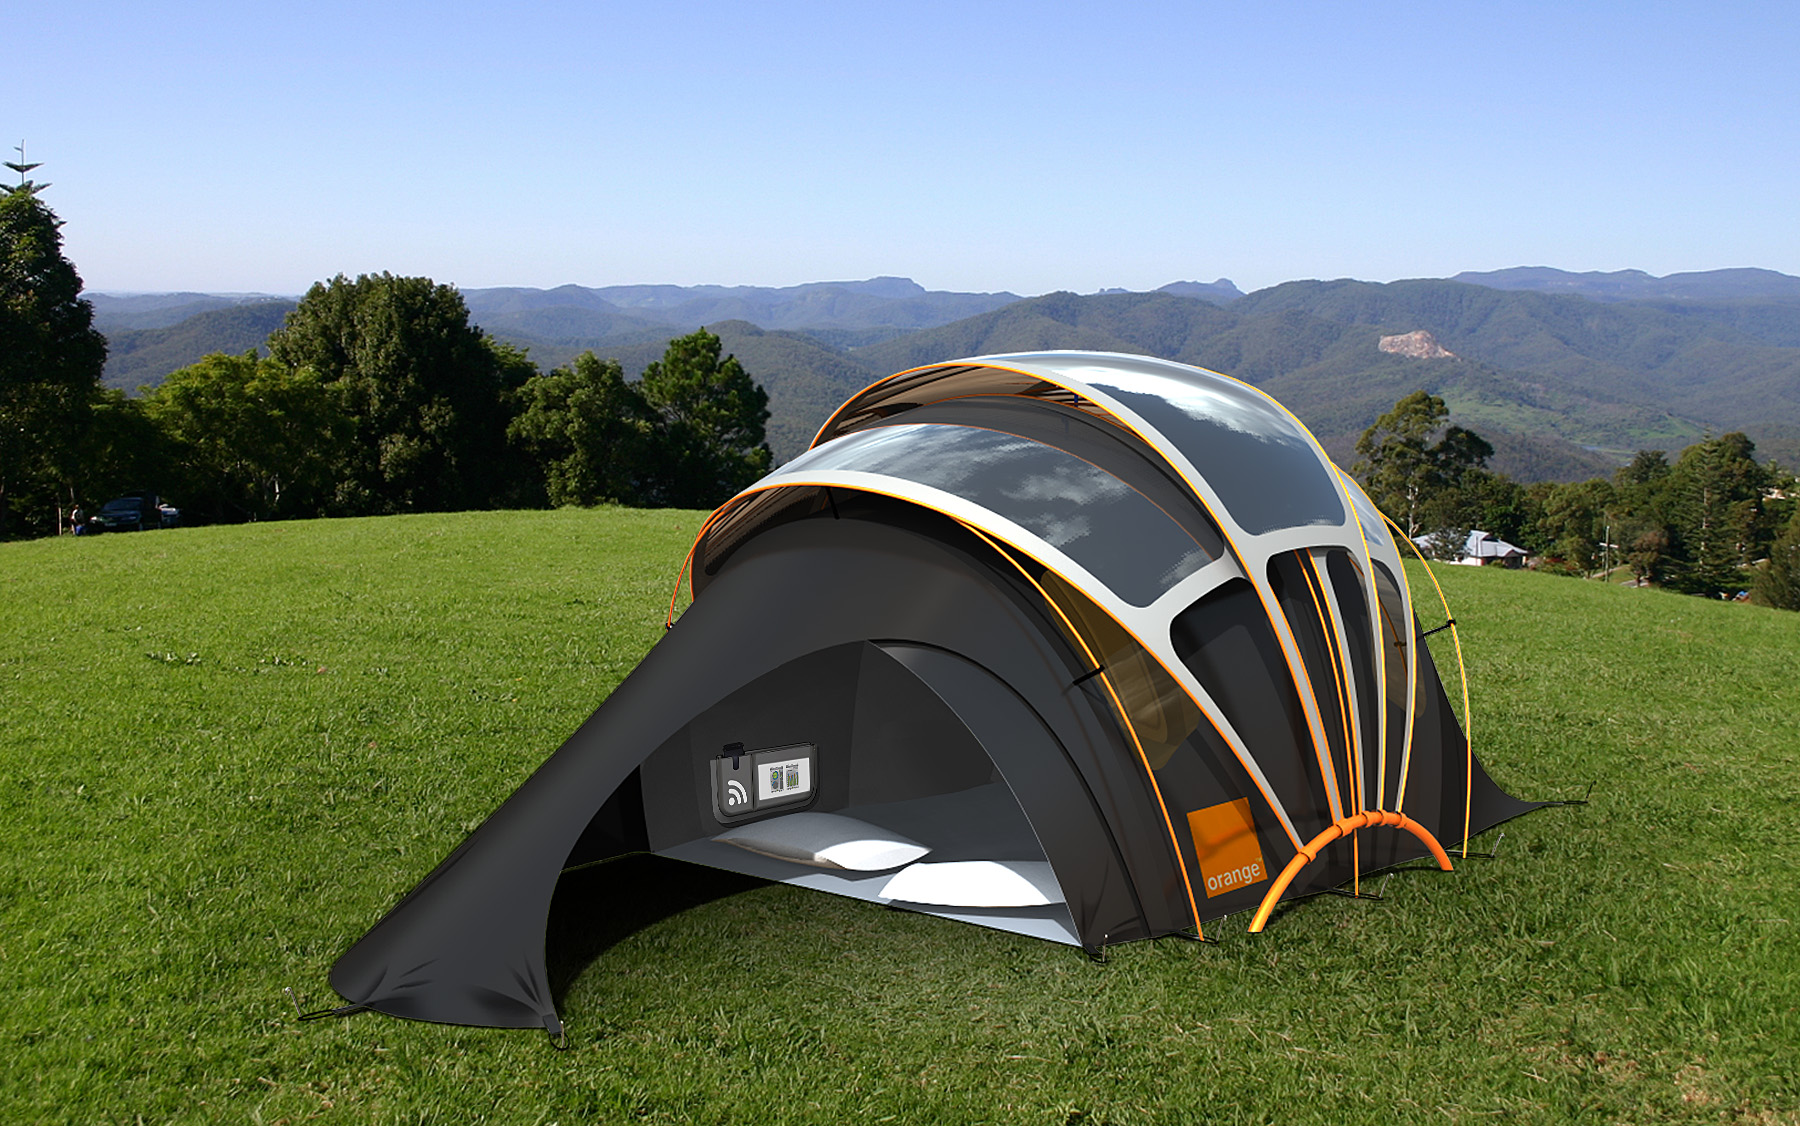 The World's Most Amazing Tents